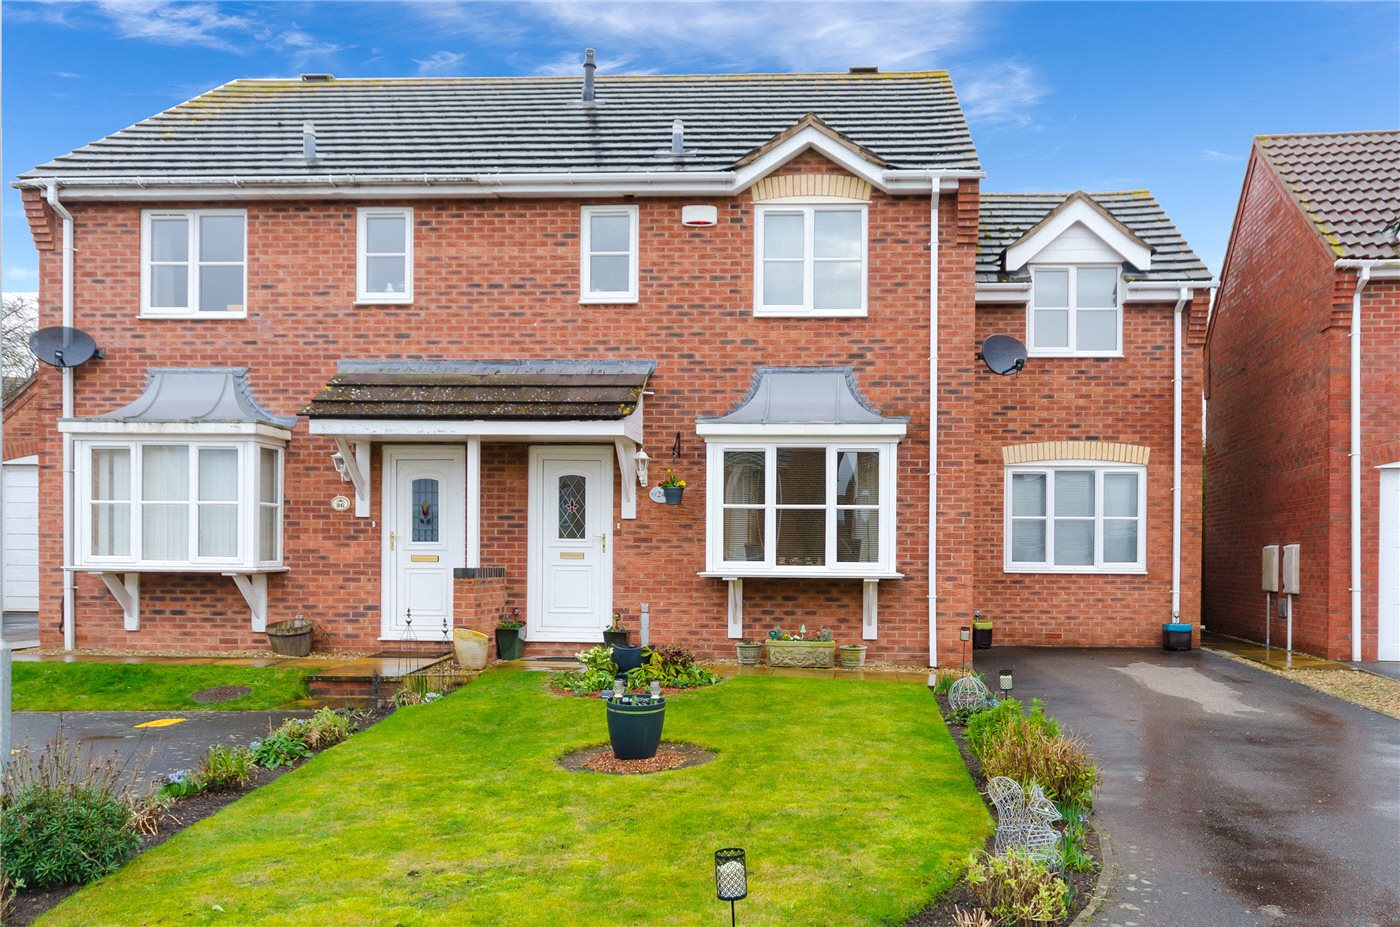 3 Bedrooms Semi Detached House for sale in Coverley Road, South Witham, Grantham, NG33